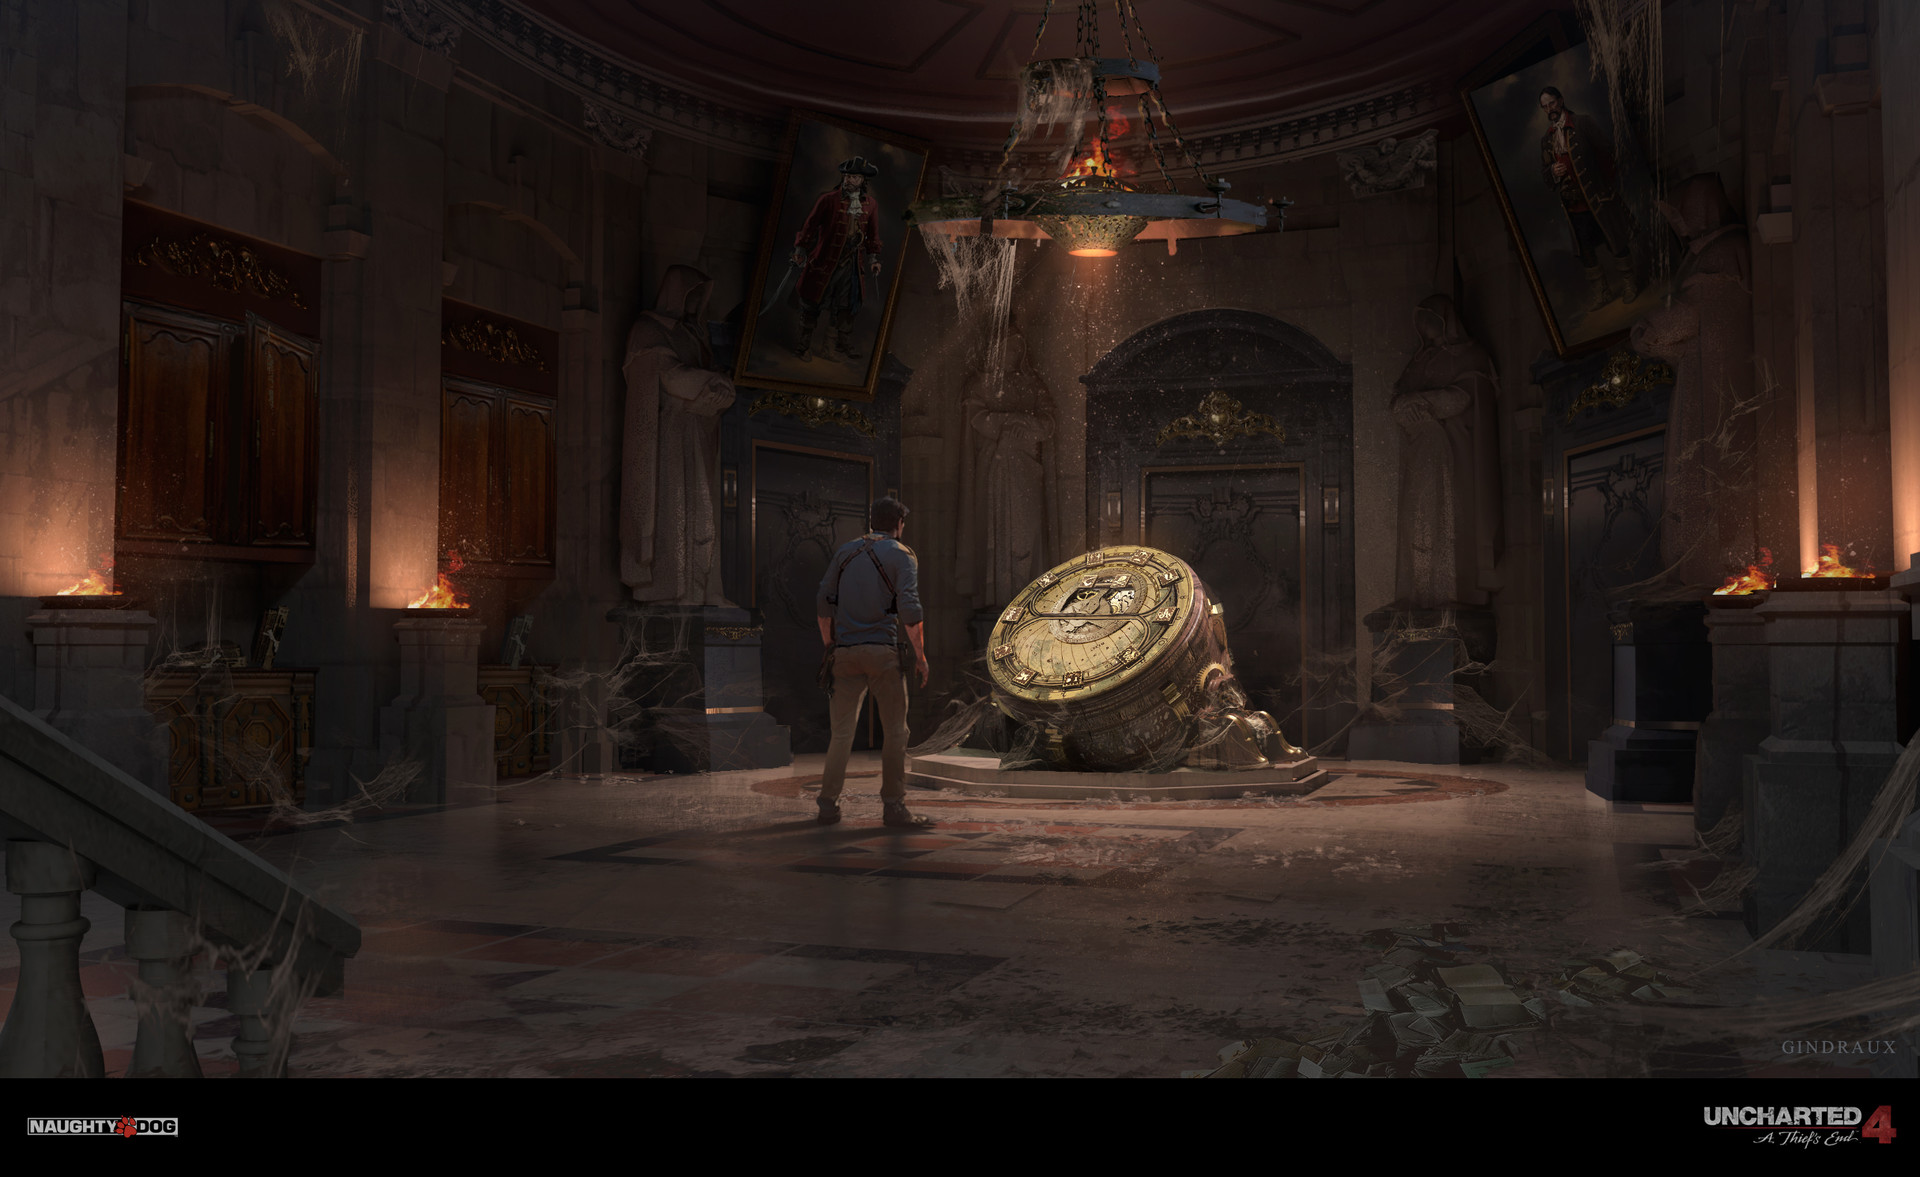 Uncharted 4 Concept Art - Nick Gindraux